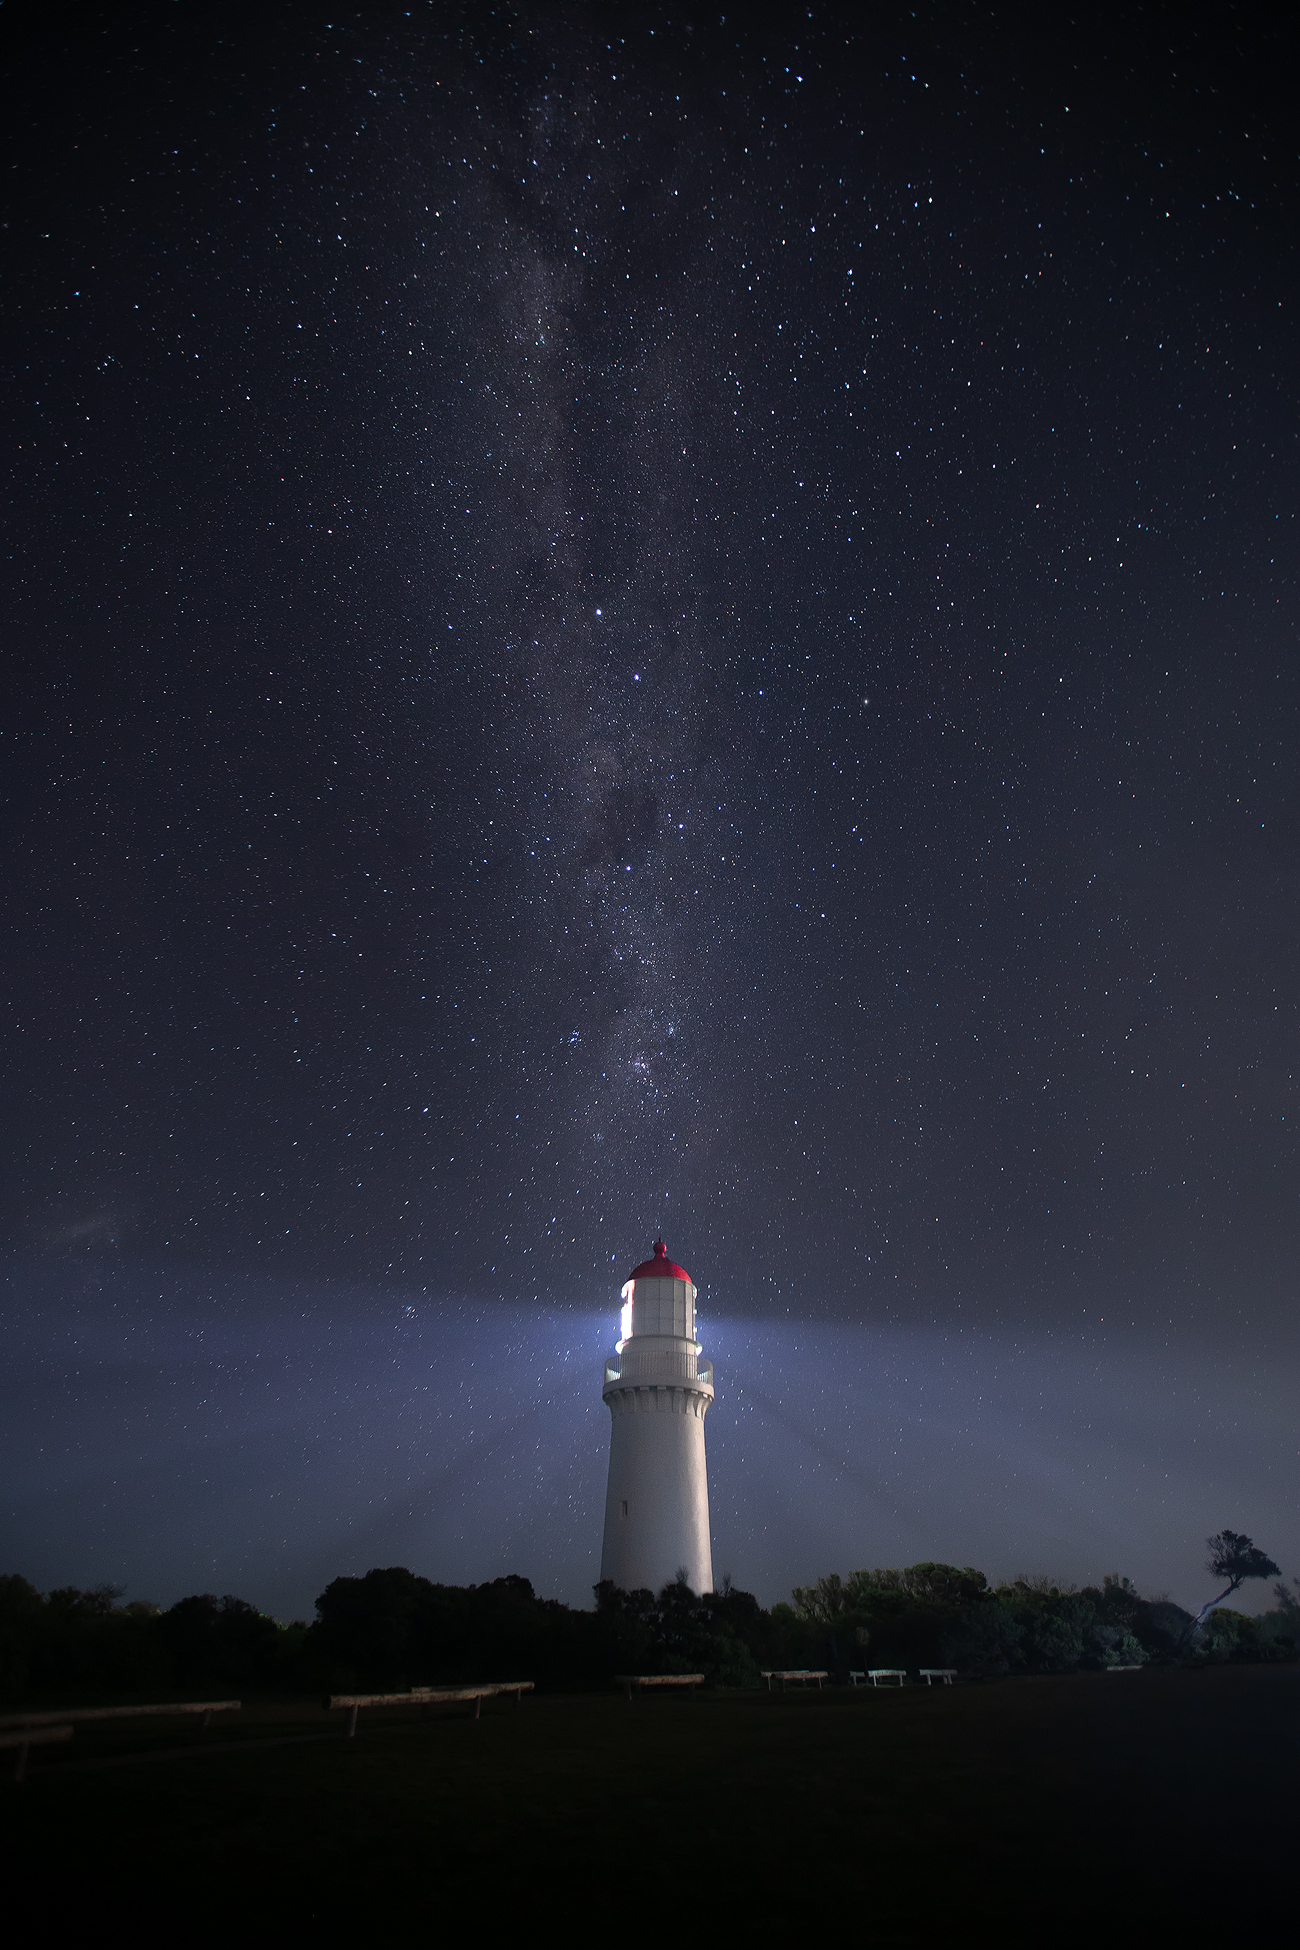 Night Photography Workshop Melbourne | Milky Way Cape Schanck Lighthouse | We Are Raw Photography